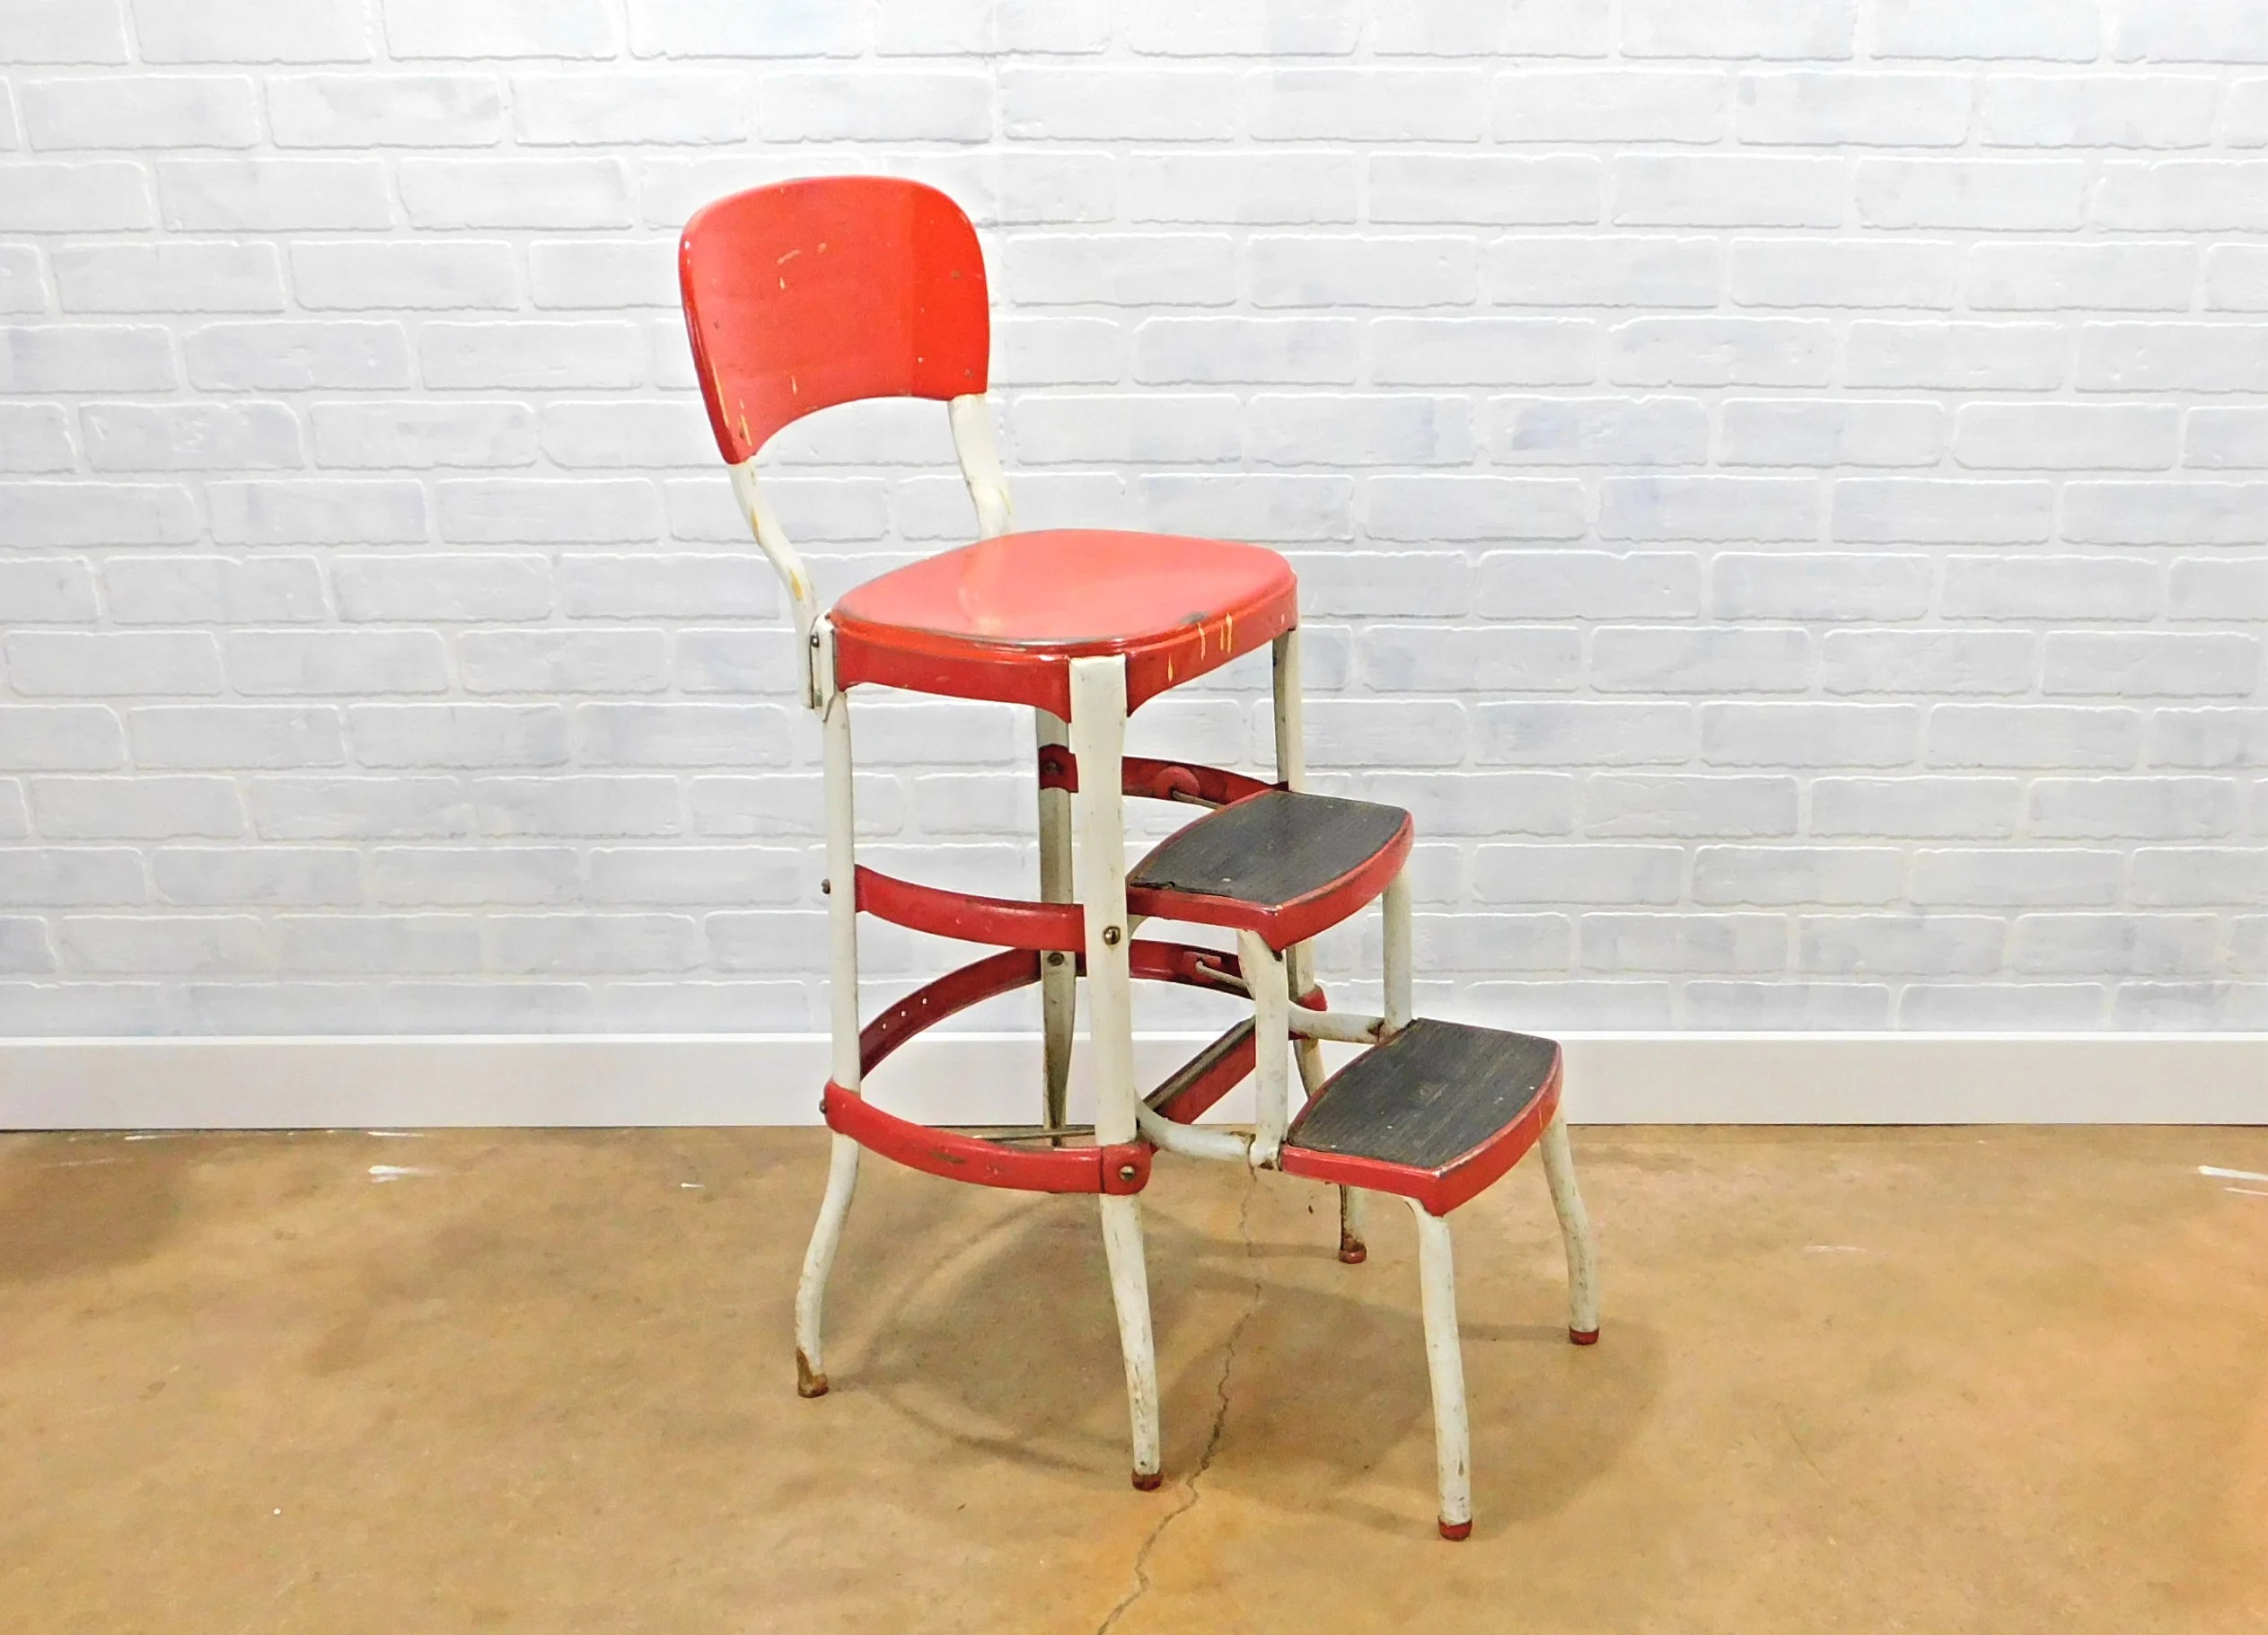 cosco kitchen stool chair baby portable high safety harness red white step vintage etsy image 0